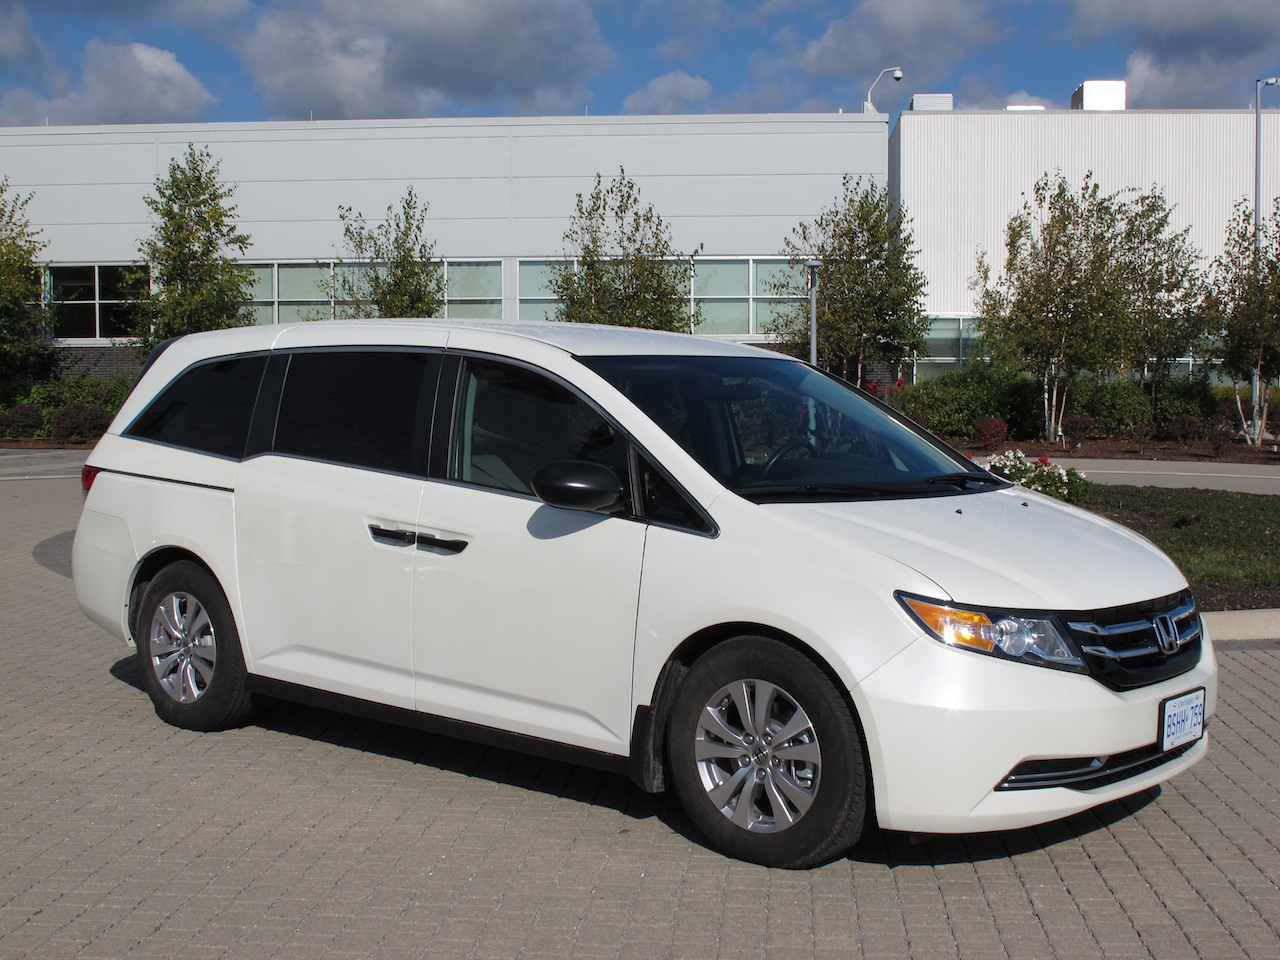 2014 Honda Odyssey White Front Side View